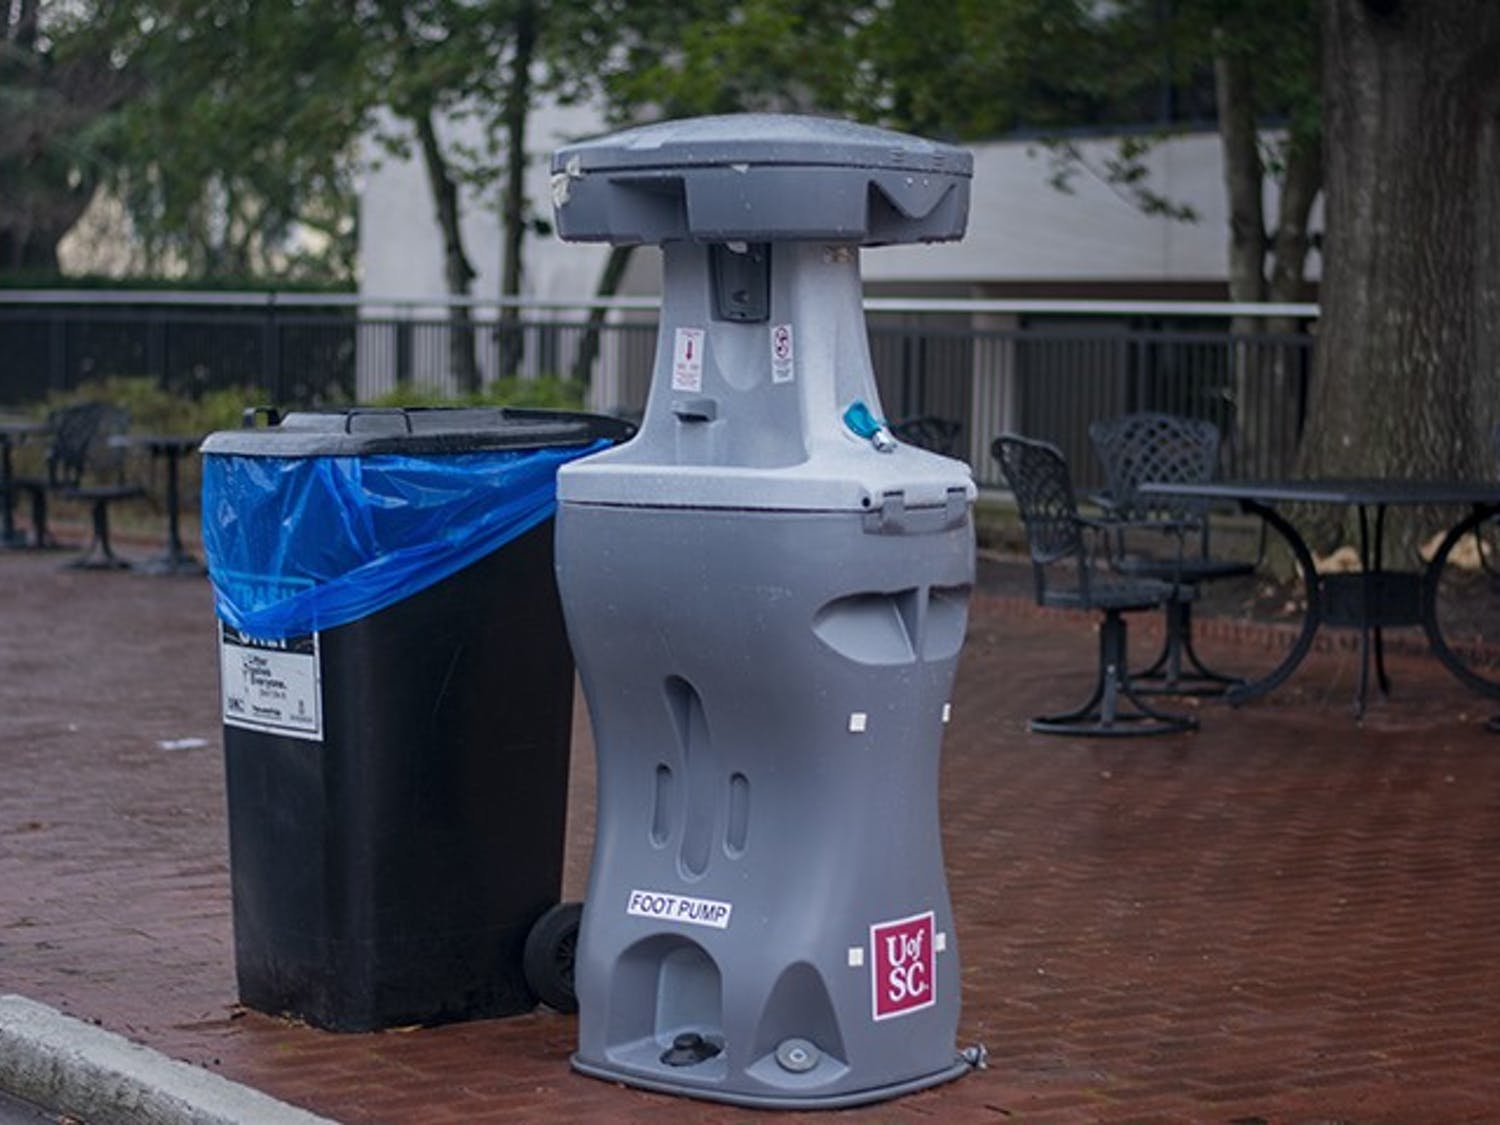 A handwashing station sits on Greene Street outside of Russell House. Handwashing stations are one of the various safety measures implemented by USC as COVID-19 cases continue to rise nationwide.